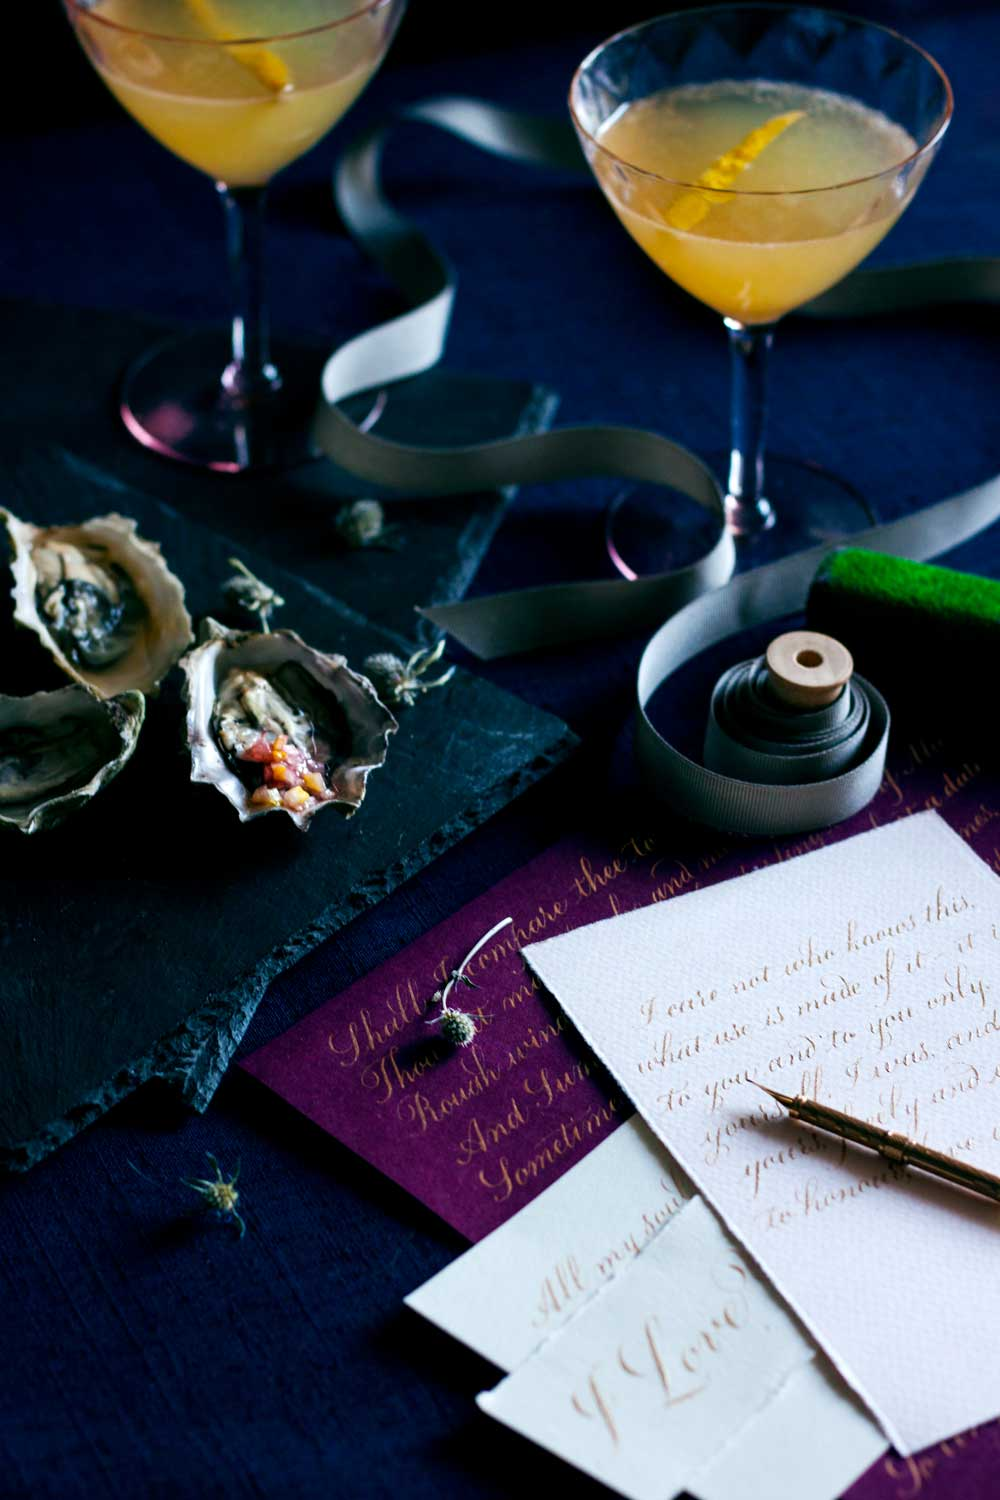 An intimate lovers nightcap | calligraphy and oysters | www.chavelli.com